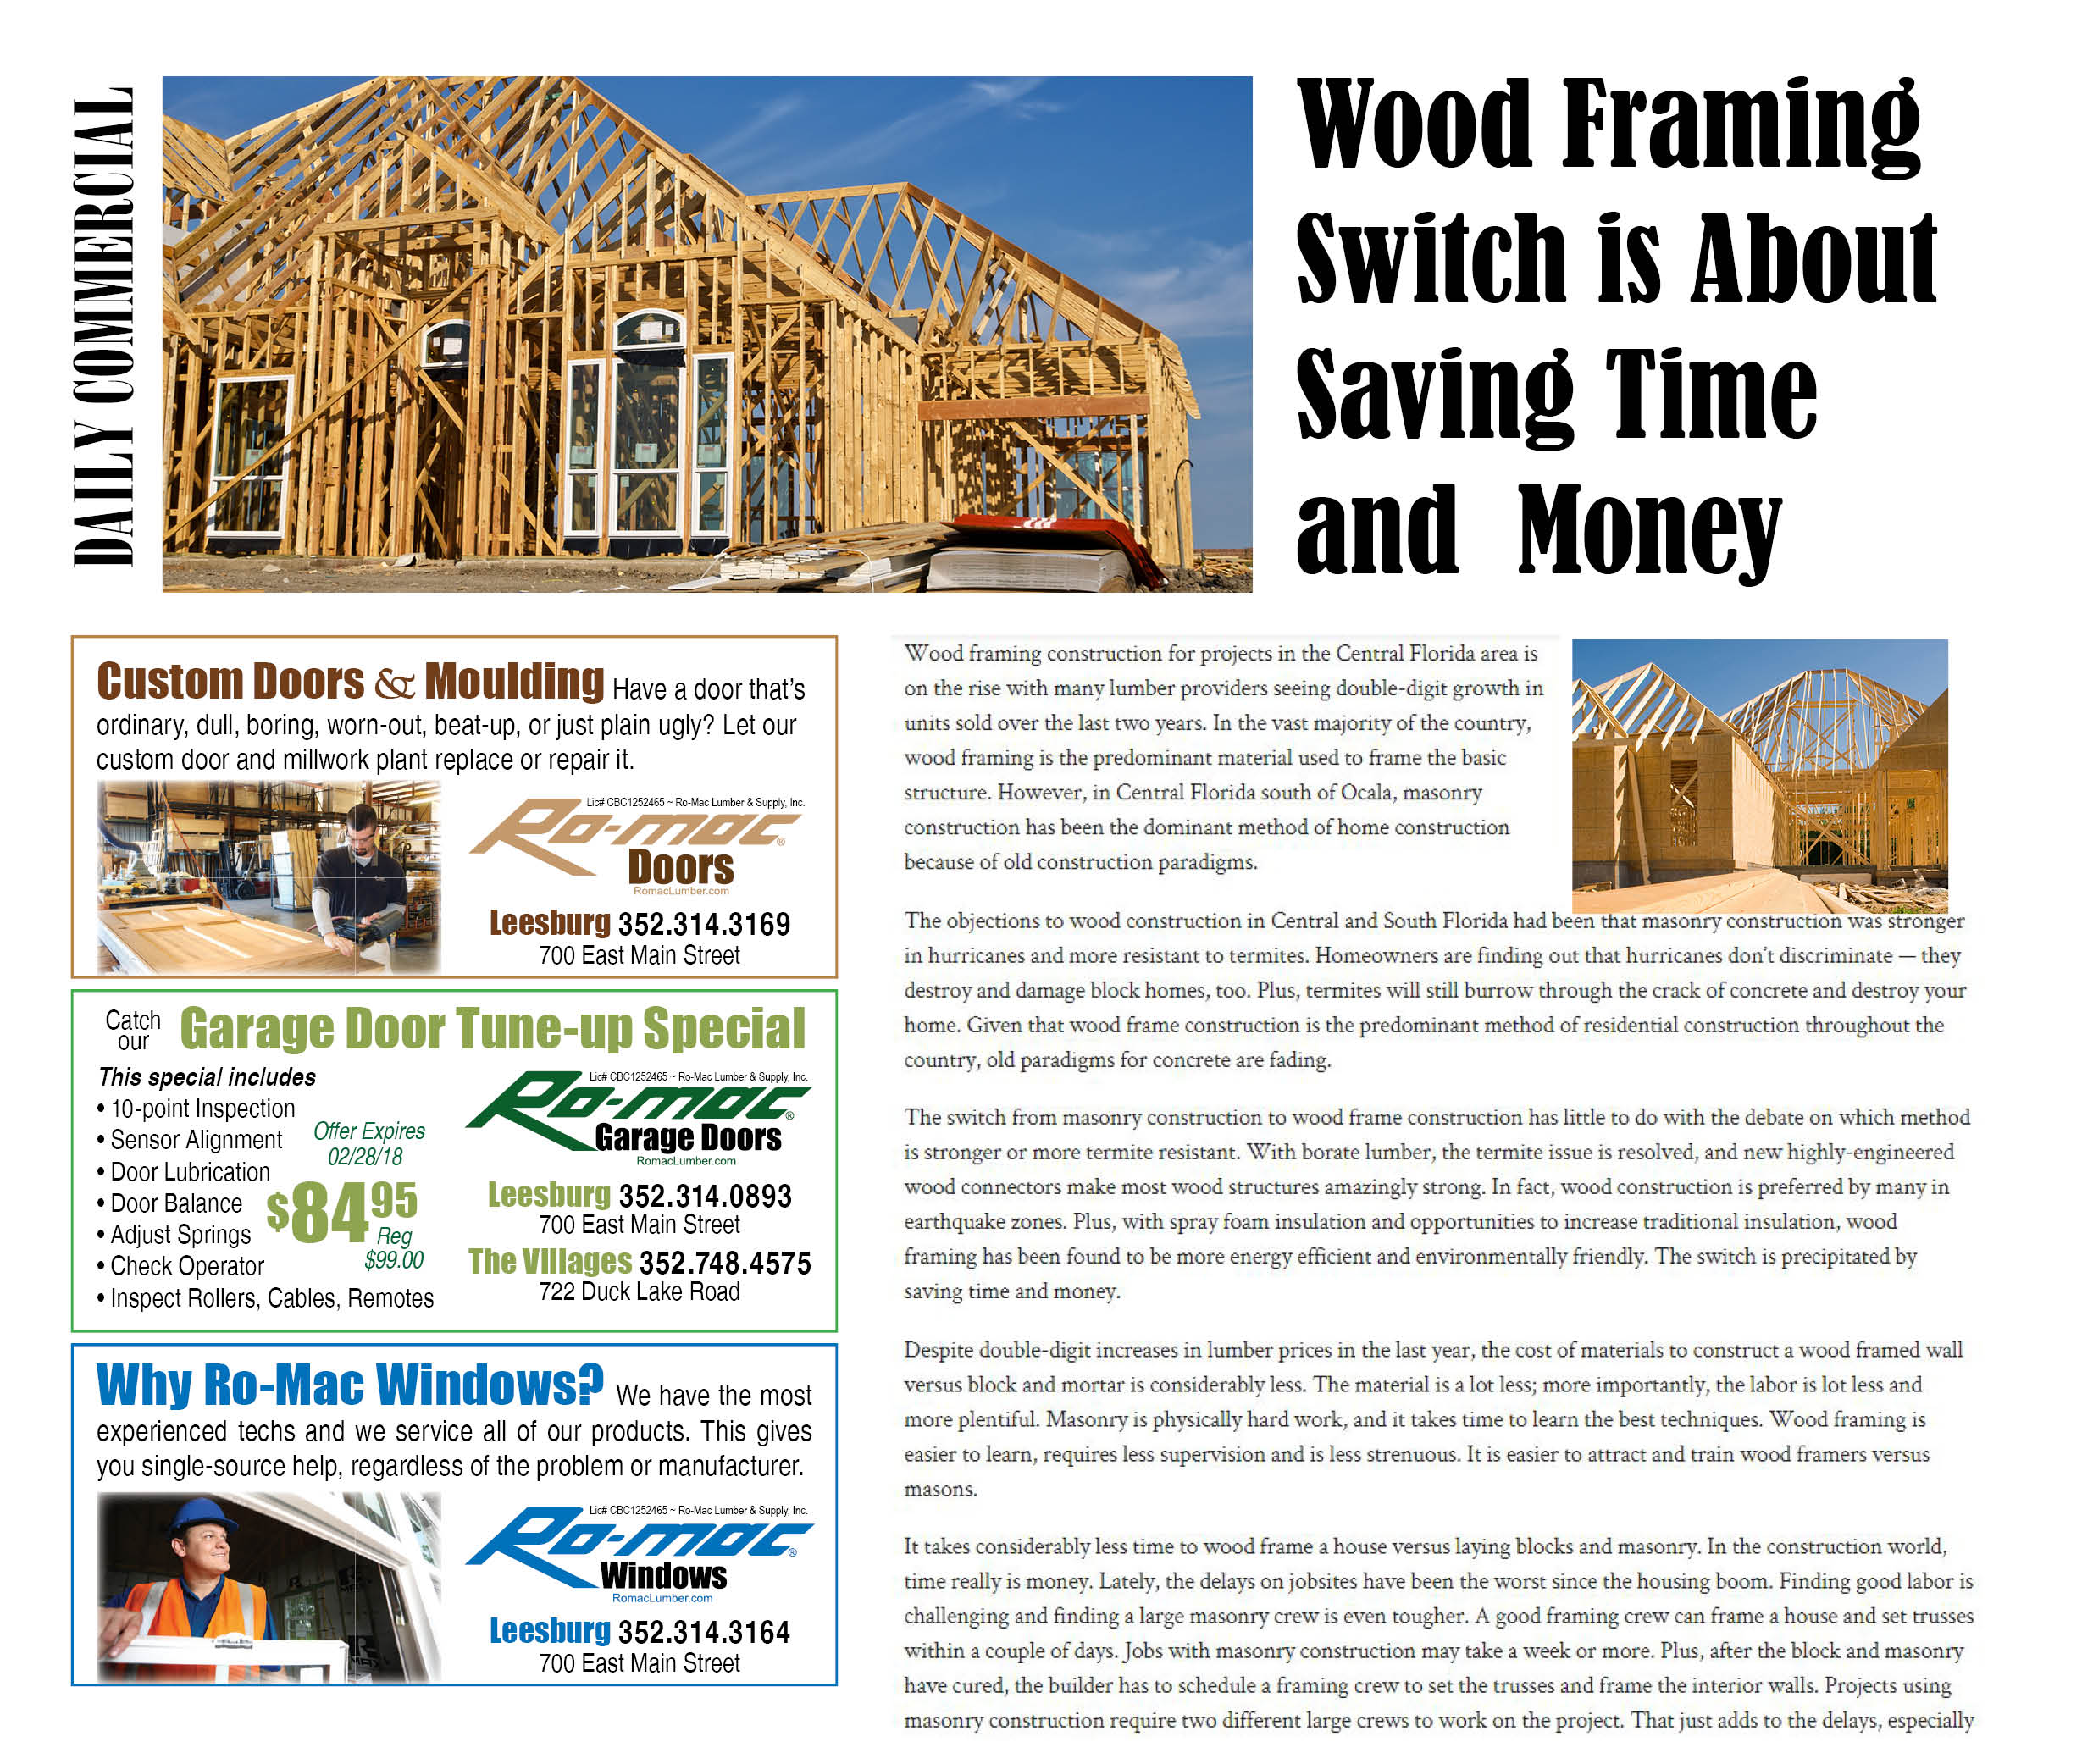 18-04-21 WoodFraming